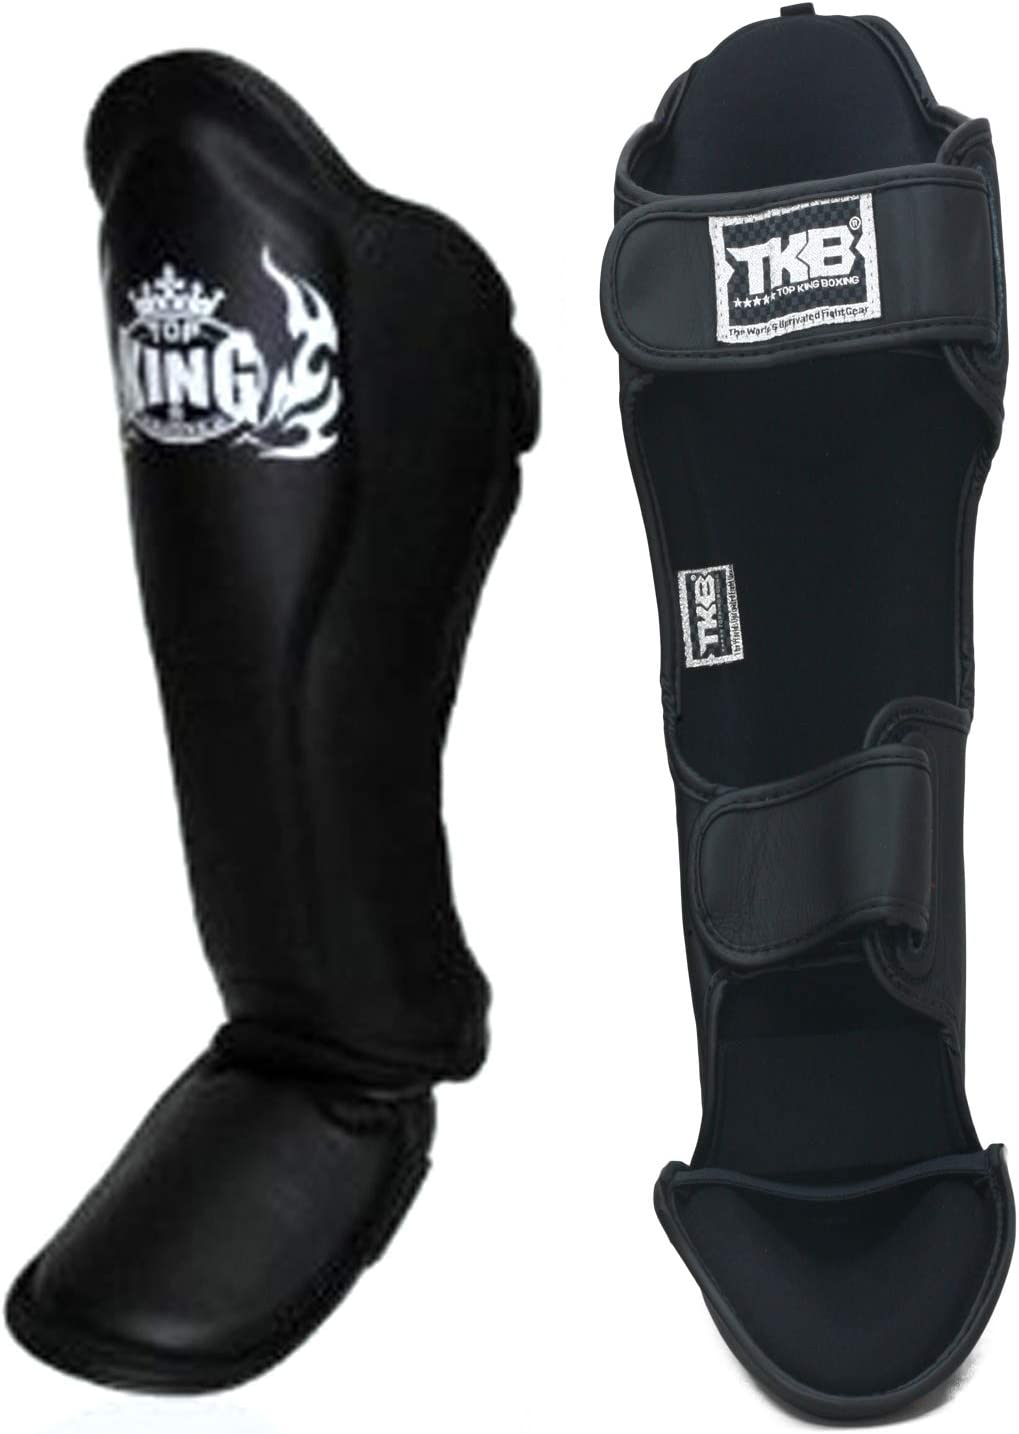 MMA Top King Shin Guard Protector Empower Creativity Superstar Color Black White Size S M L XL for Protection in Muay Thai Kickboxing Boxing